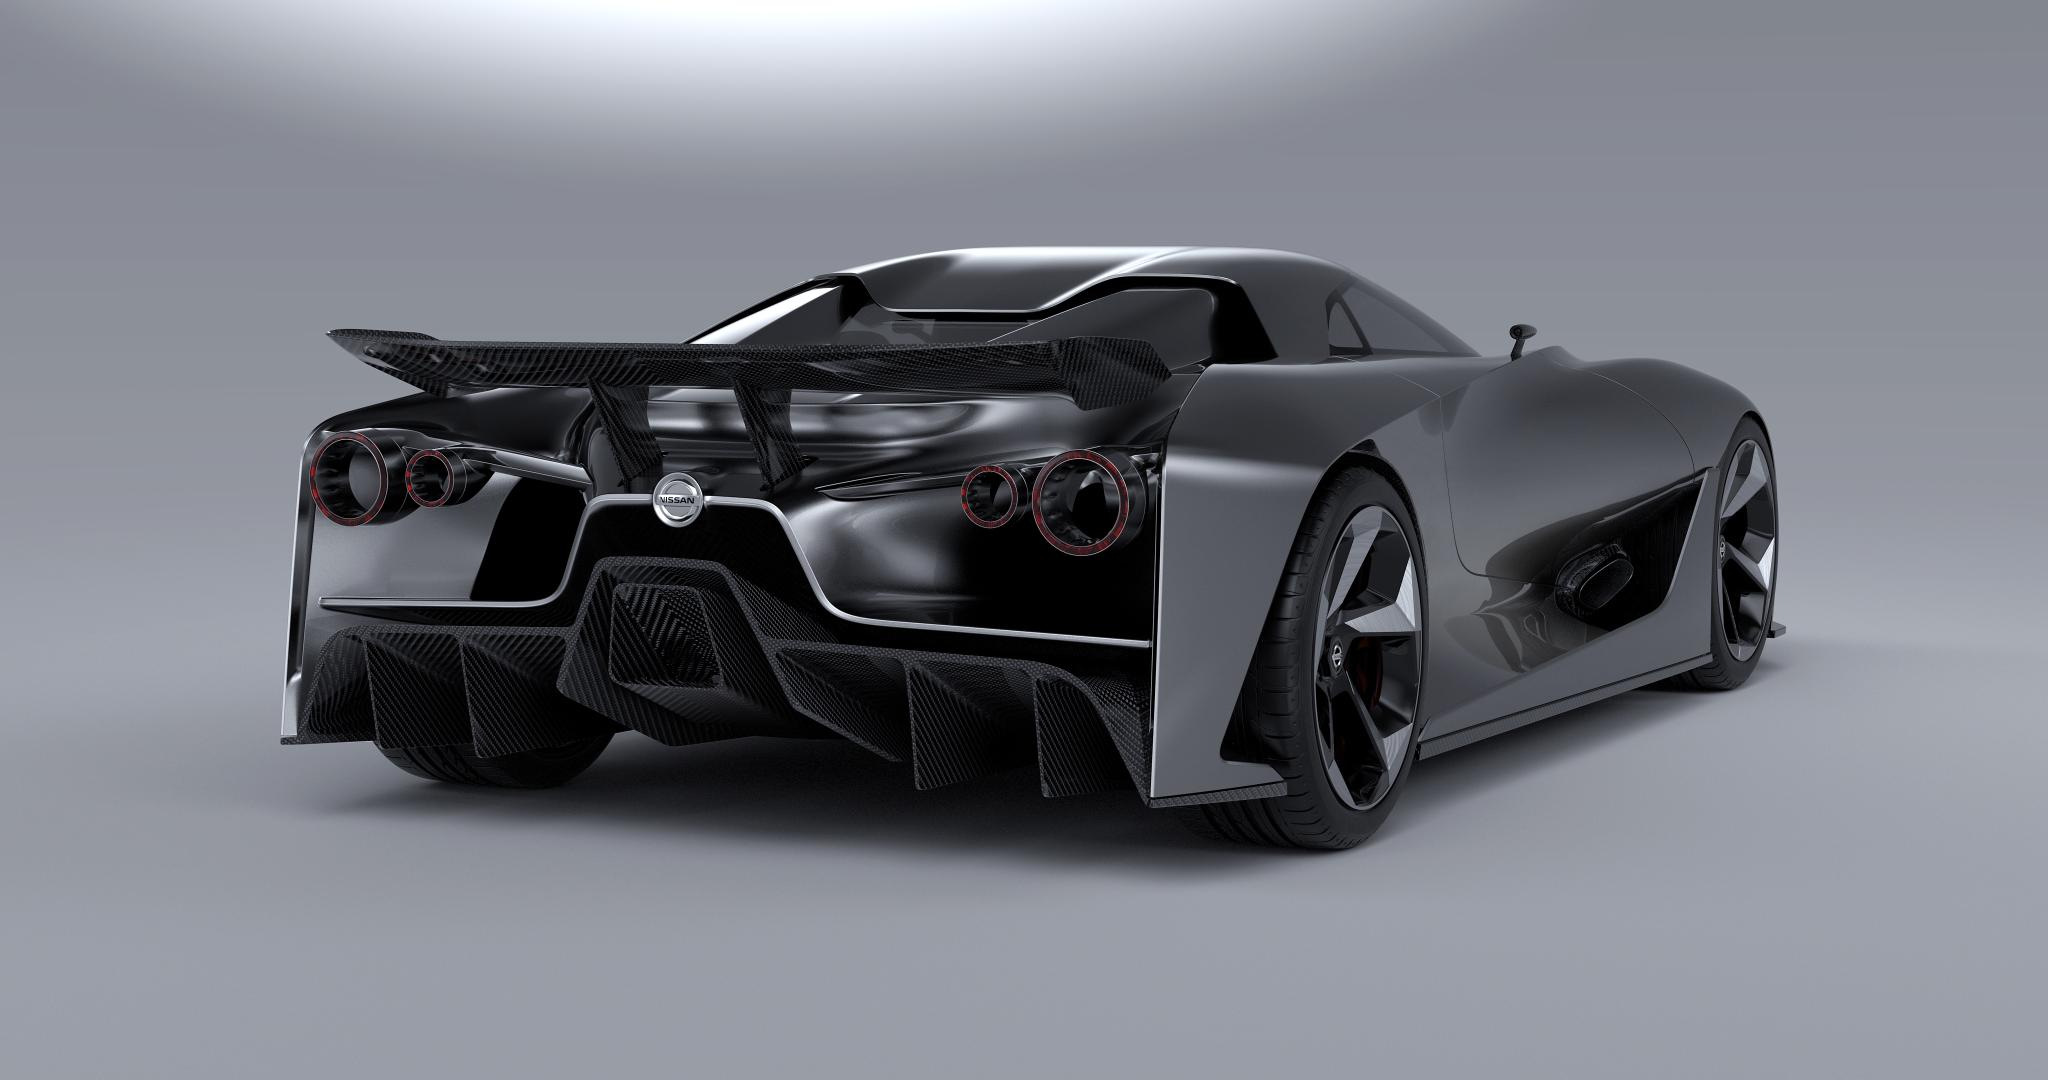 2020 Nissan Gtr Years Engine Latest Prototype Dimensions Have